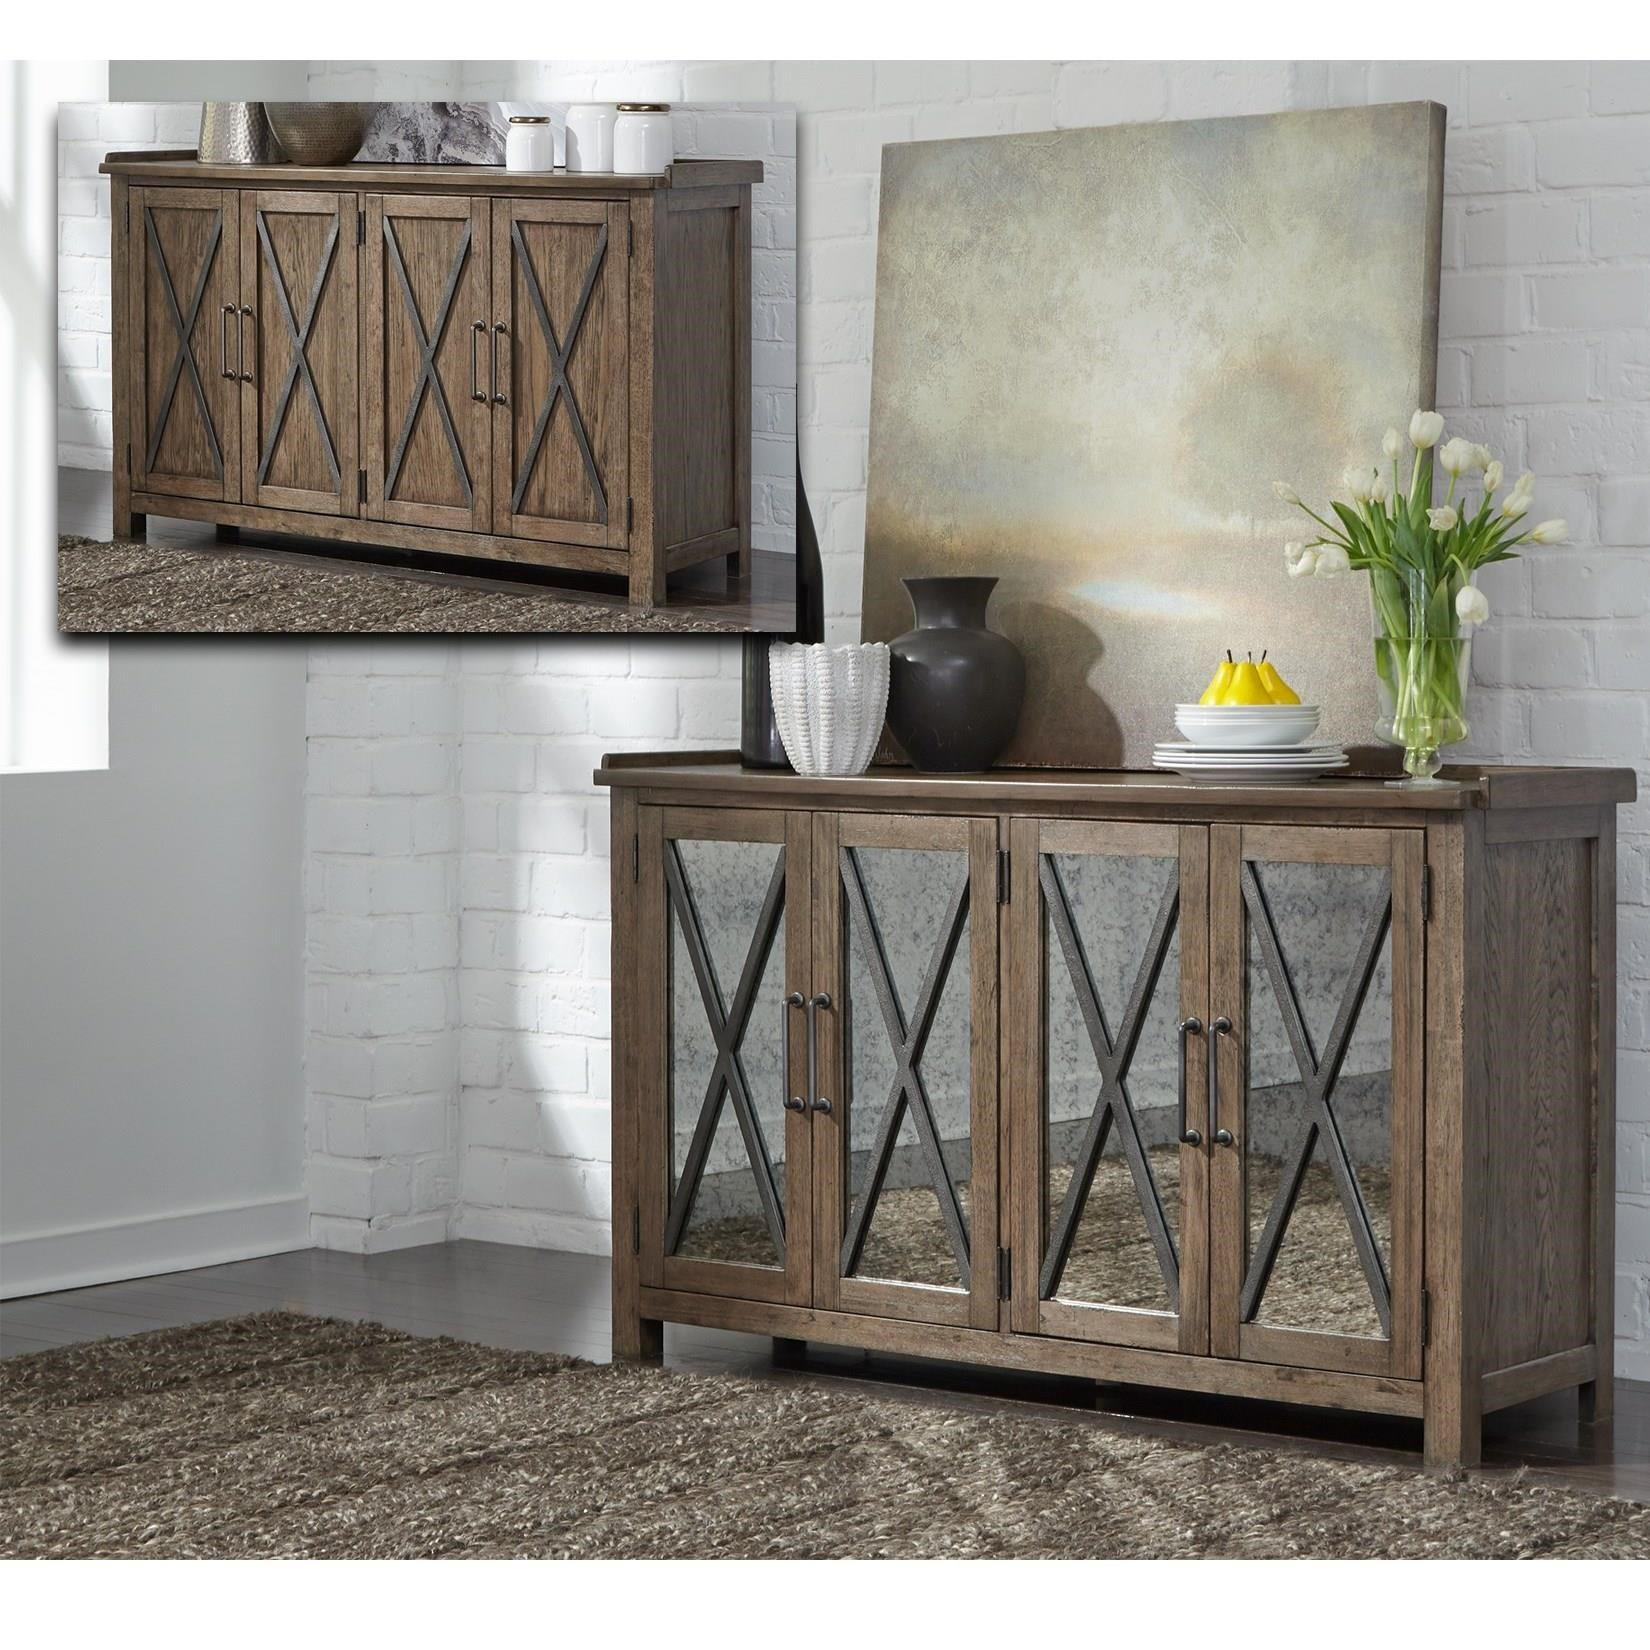 Sonoma Road Sideboard with Reversible Doors by Liberty Furniture at Lapeer Furniture & Mattress Center